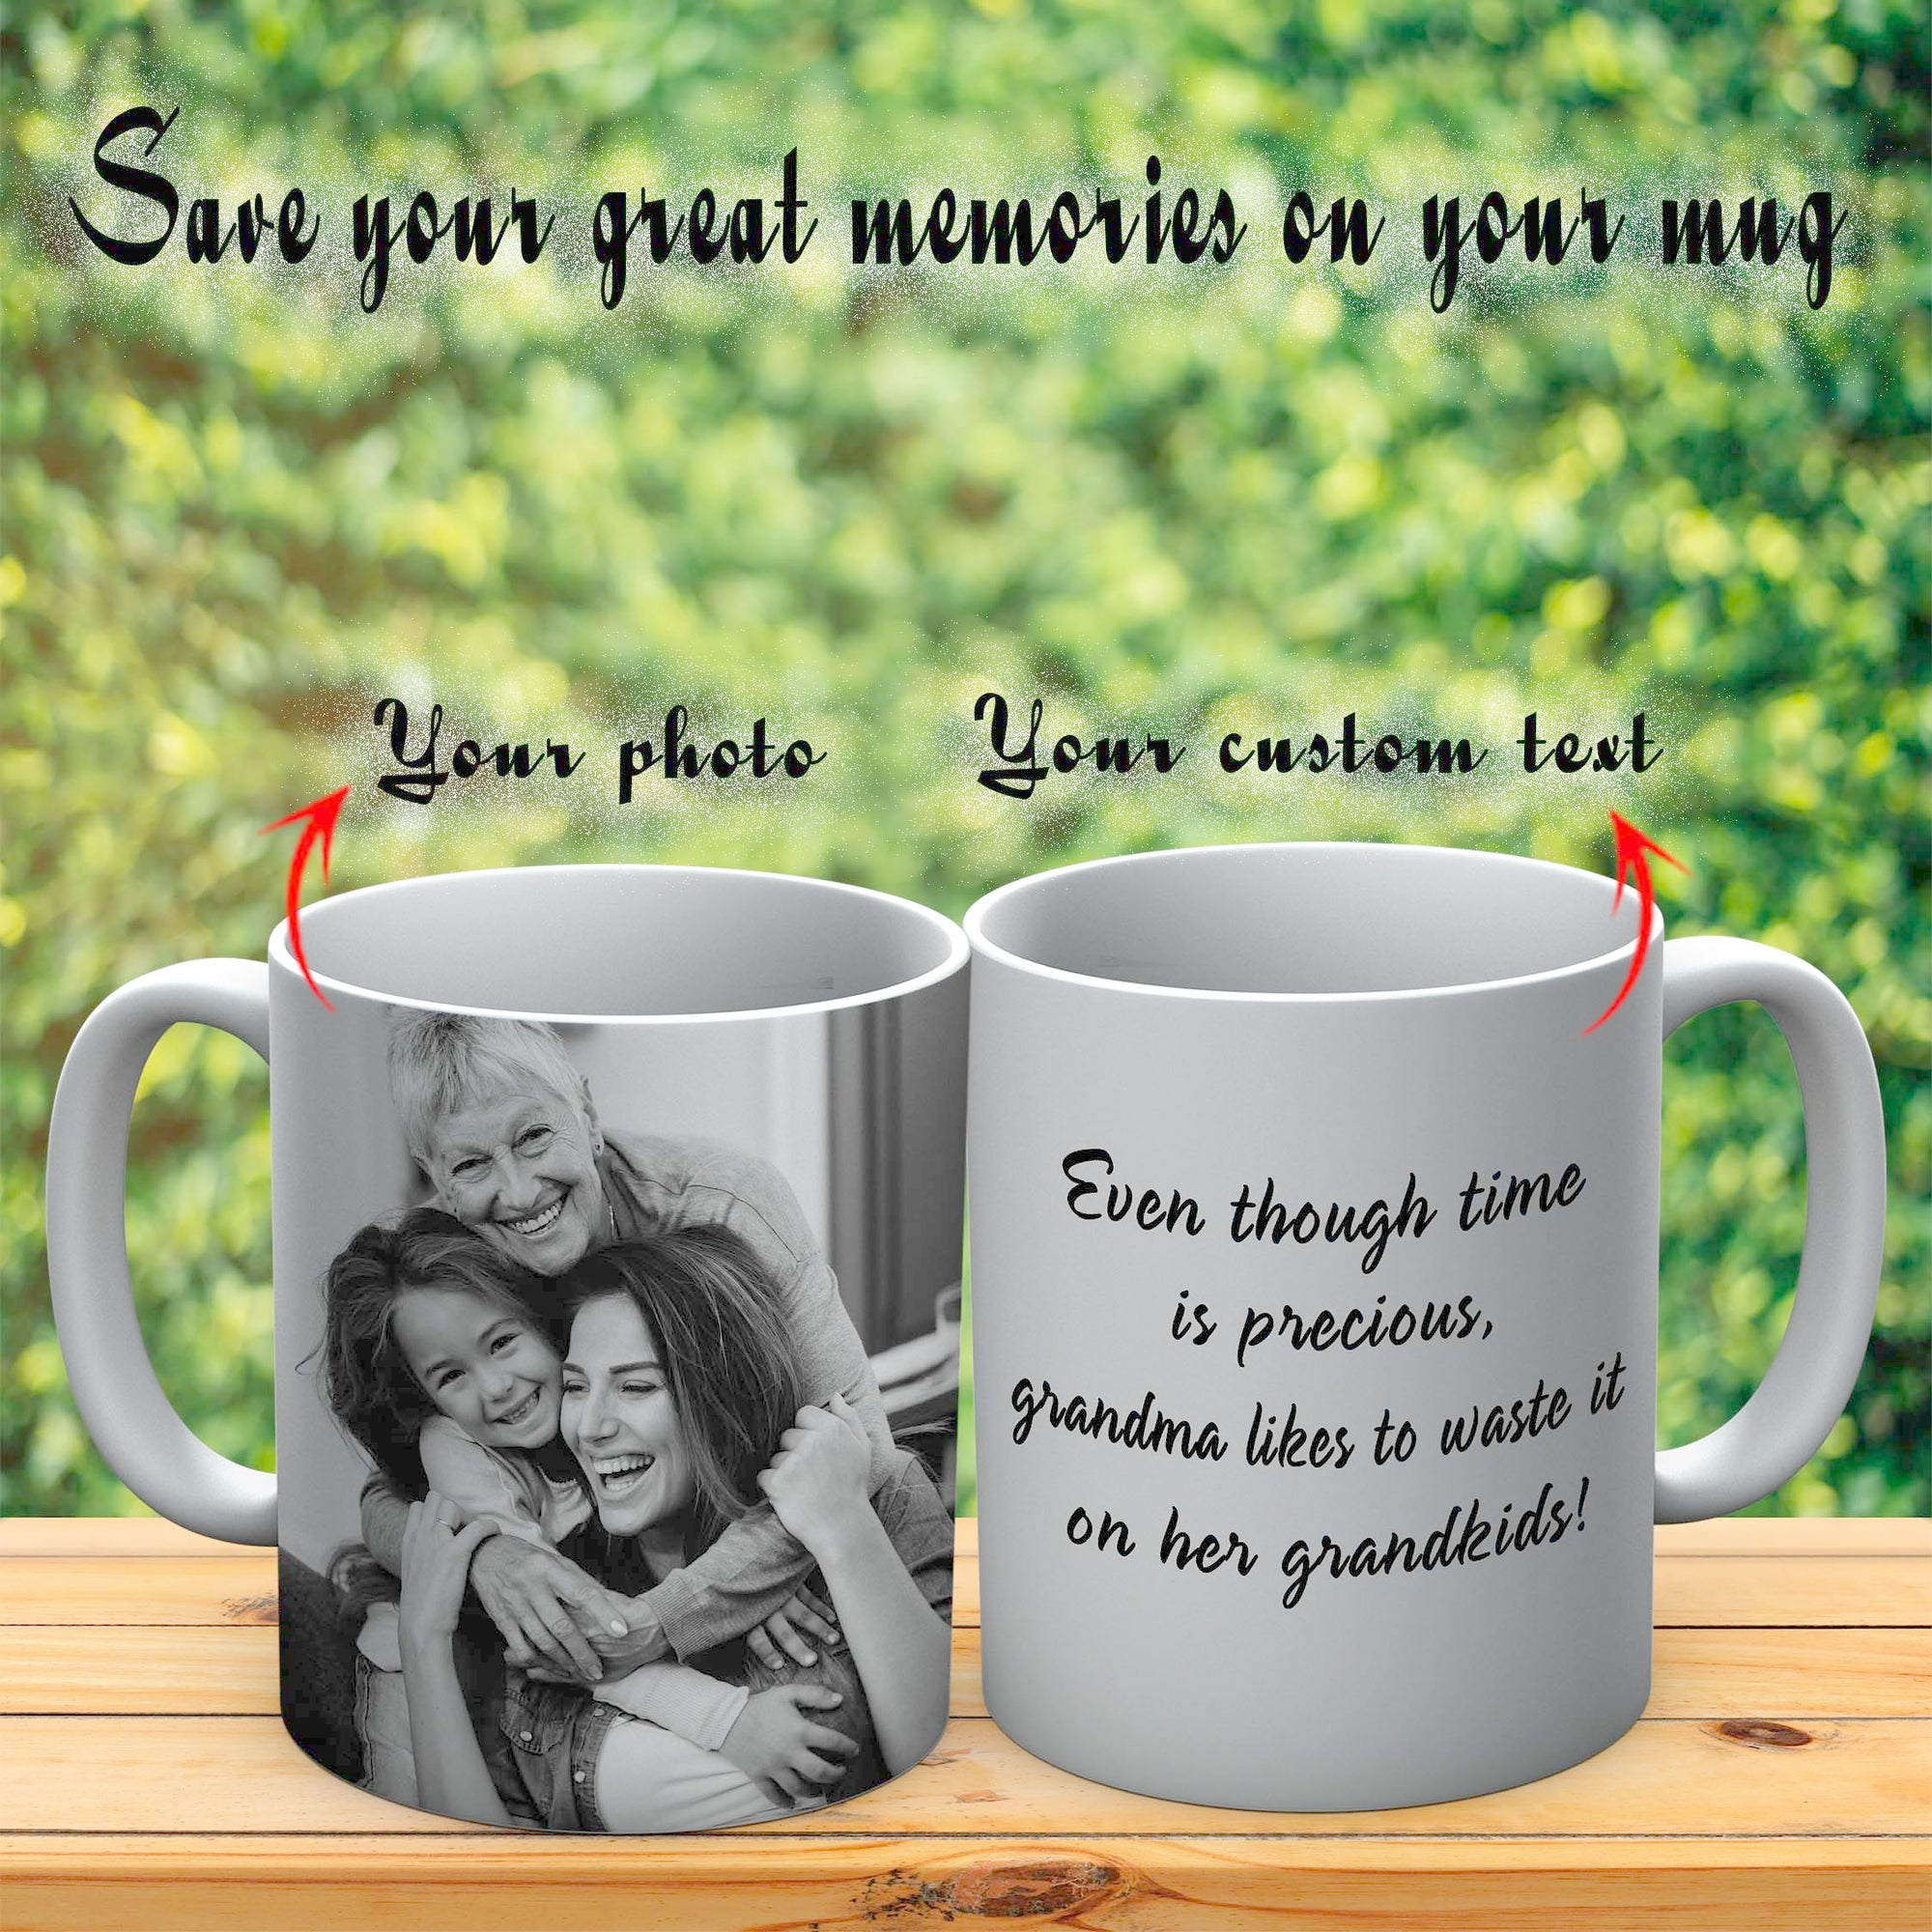 PERSONALIZED MUG - UPLOAD YOUR GREAT MEMORIES PHOTO